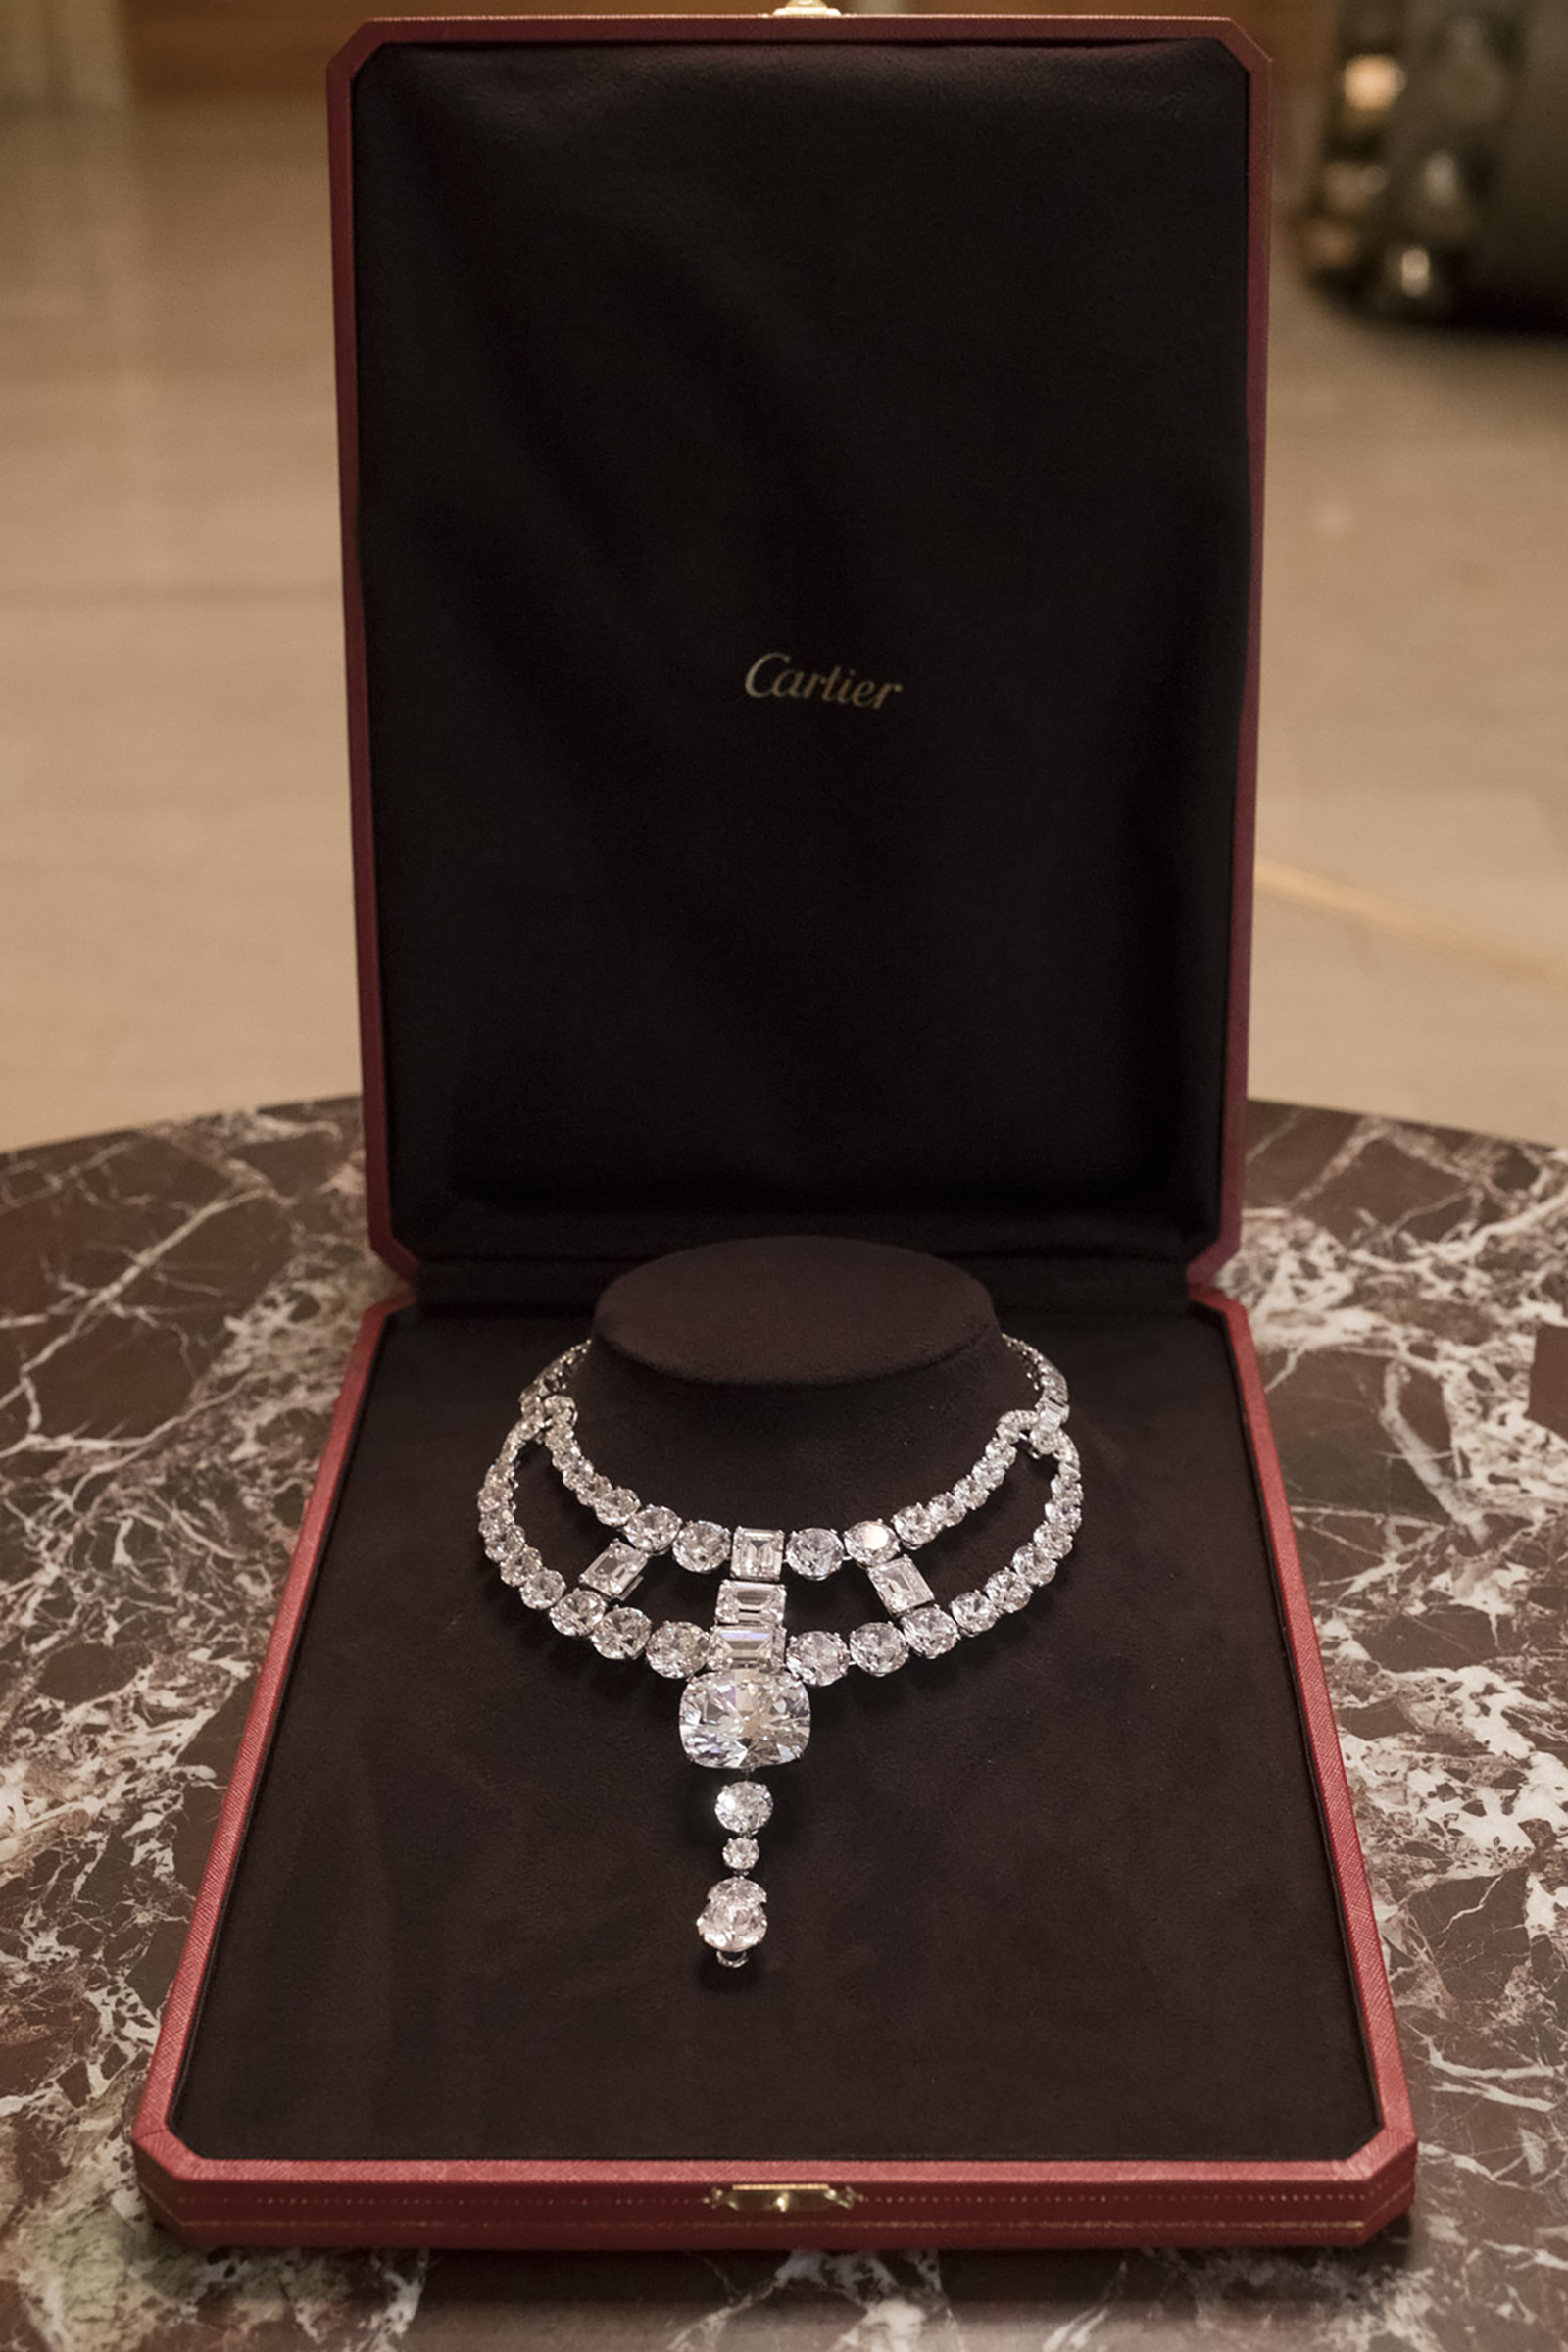 On the rocks: Cartier's Jeanne Toussaint necklace that took centre stage in Ocean's 8